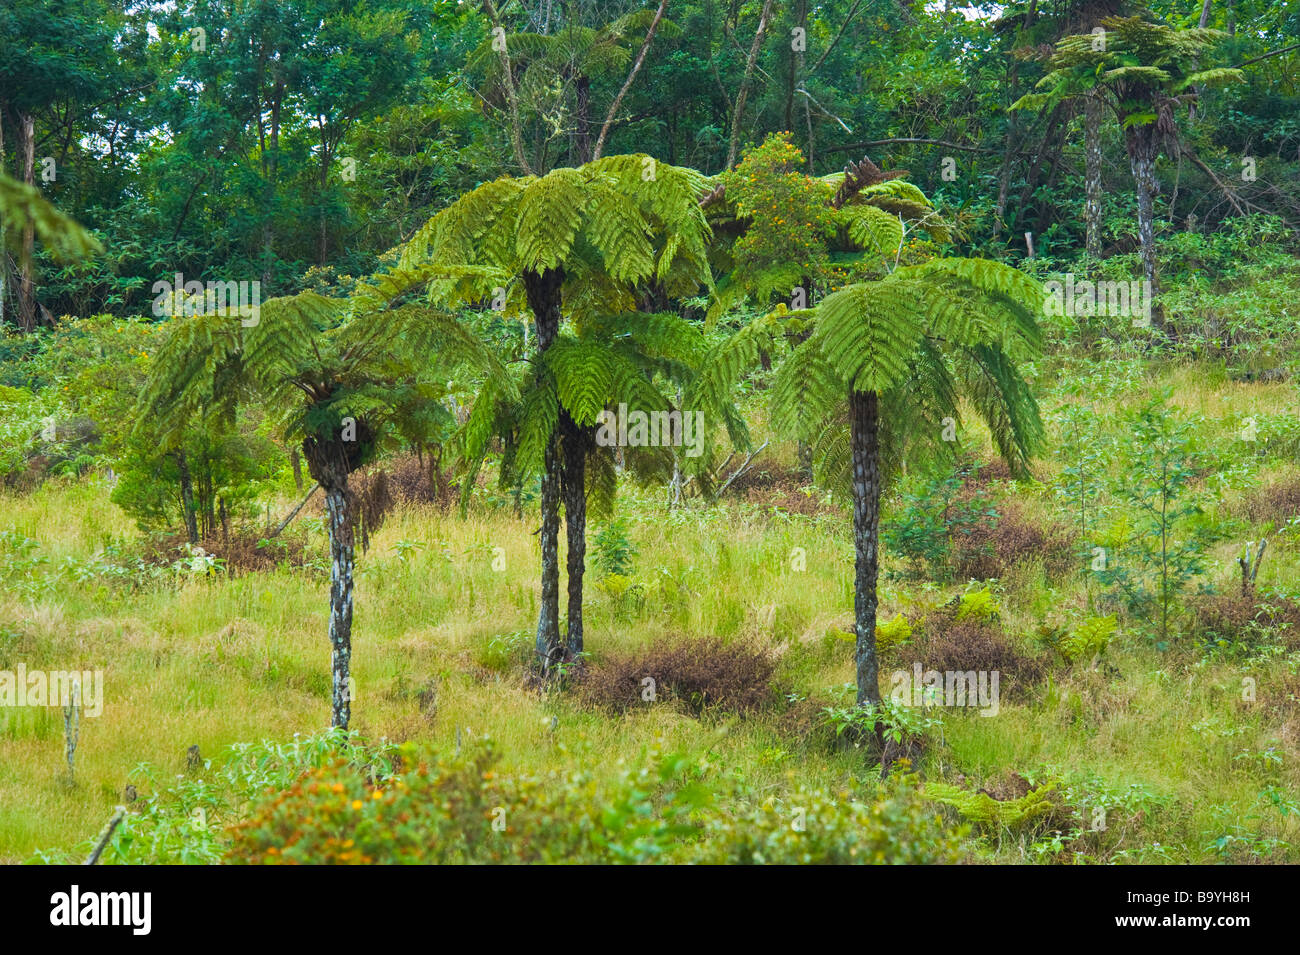 farn b ume cyathea arborea im tropischen regenwald la. Black Bedroom Furniture Sets. Home Design Ideas